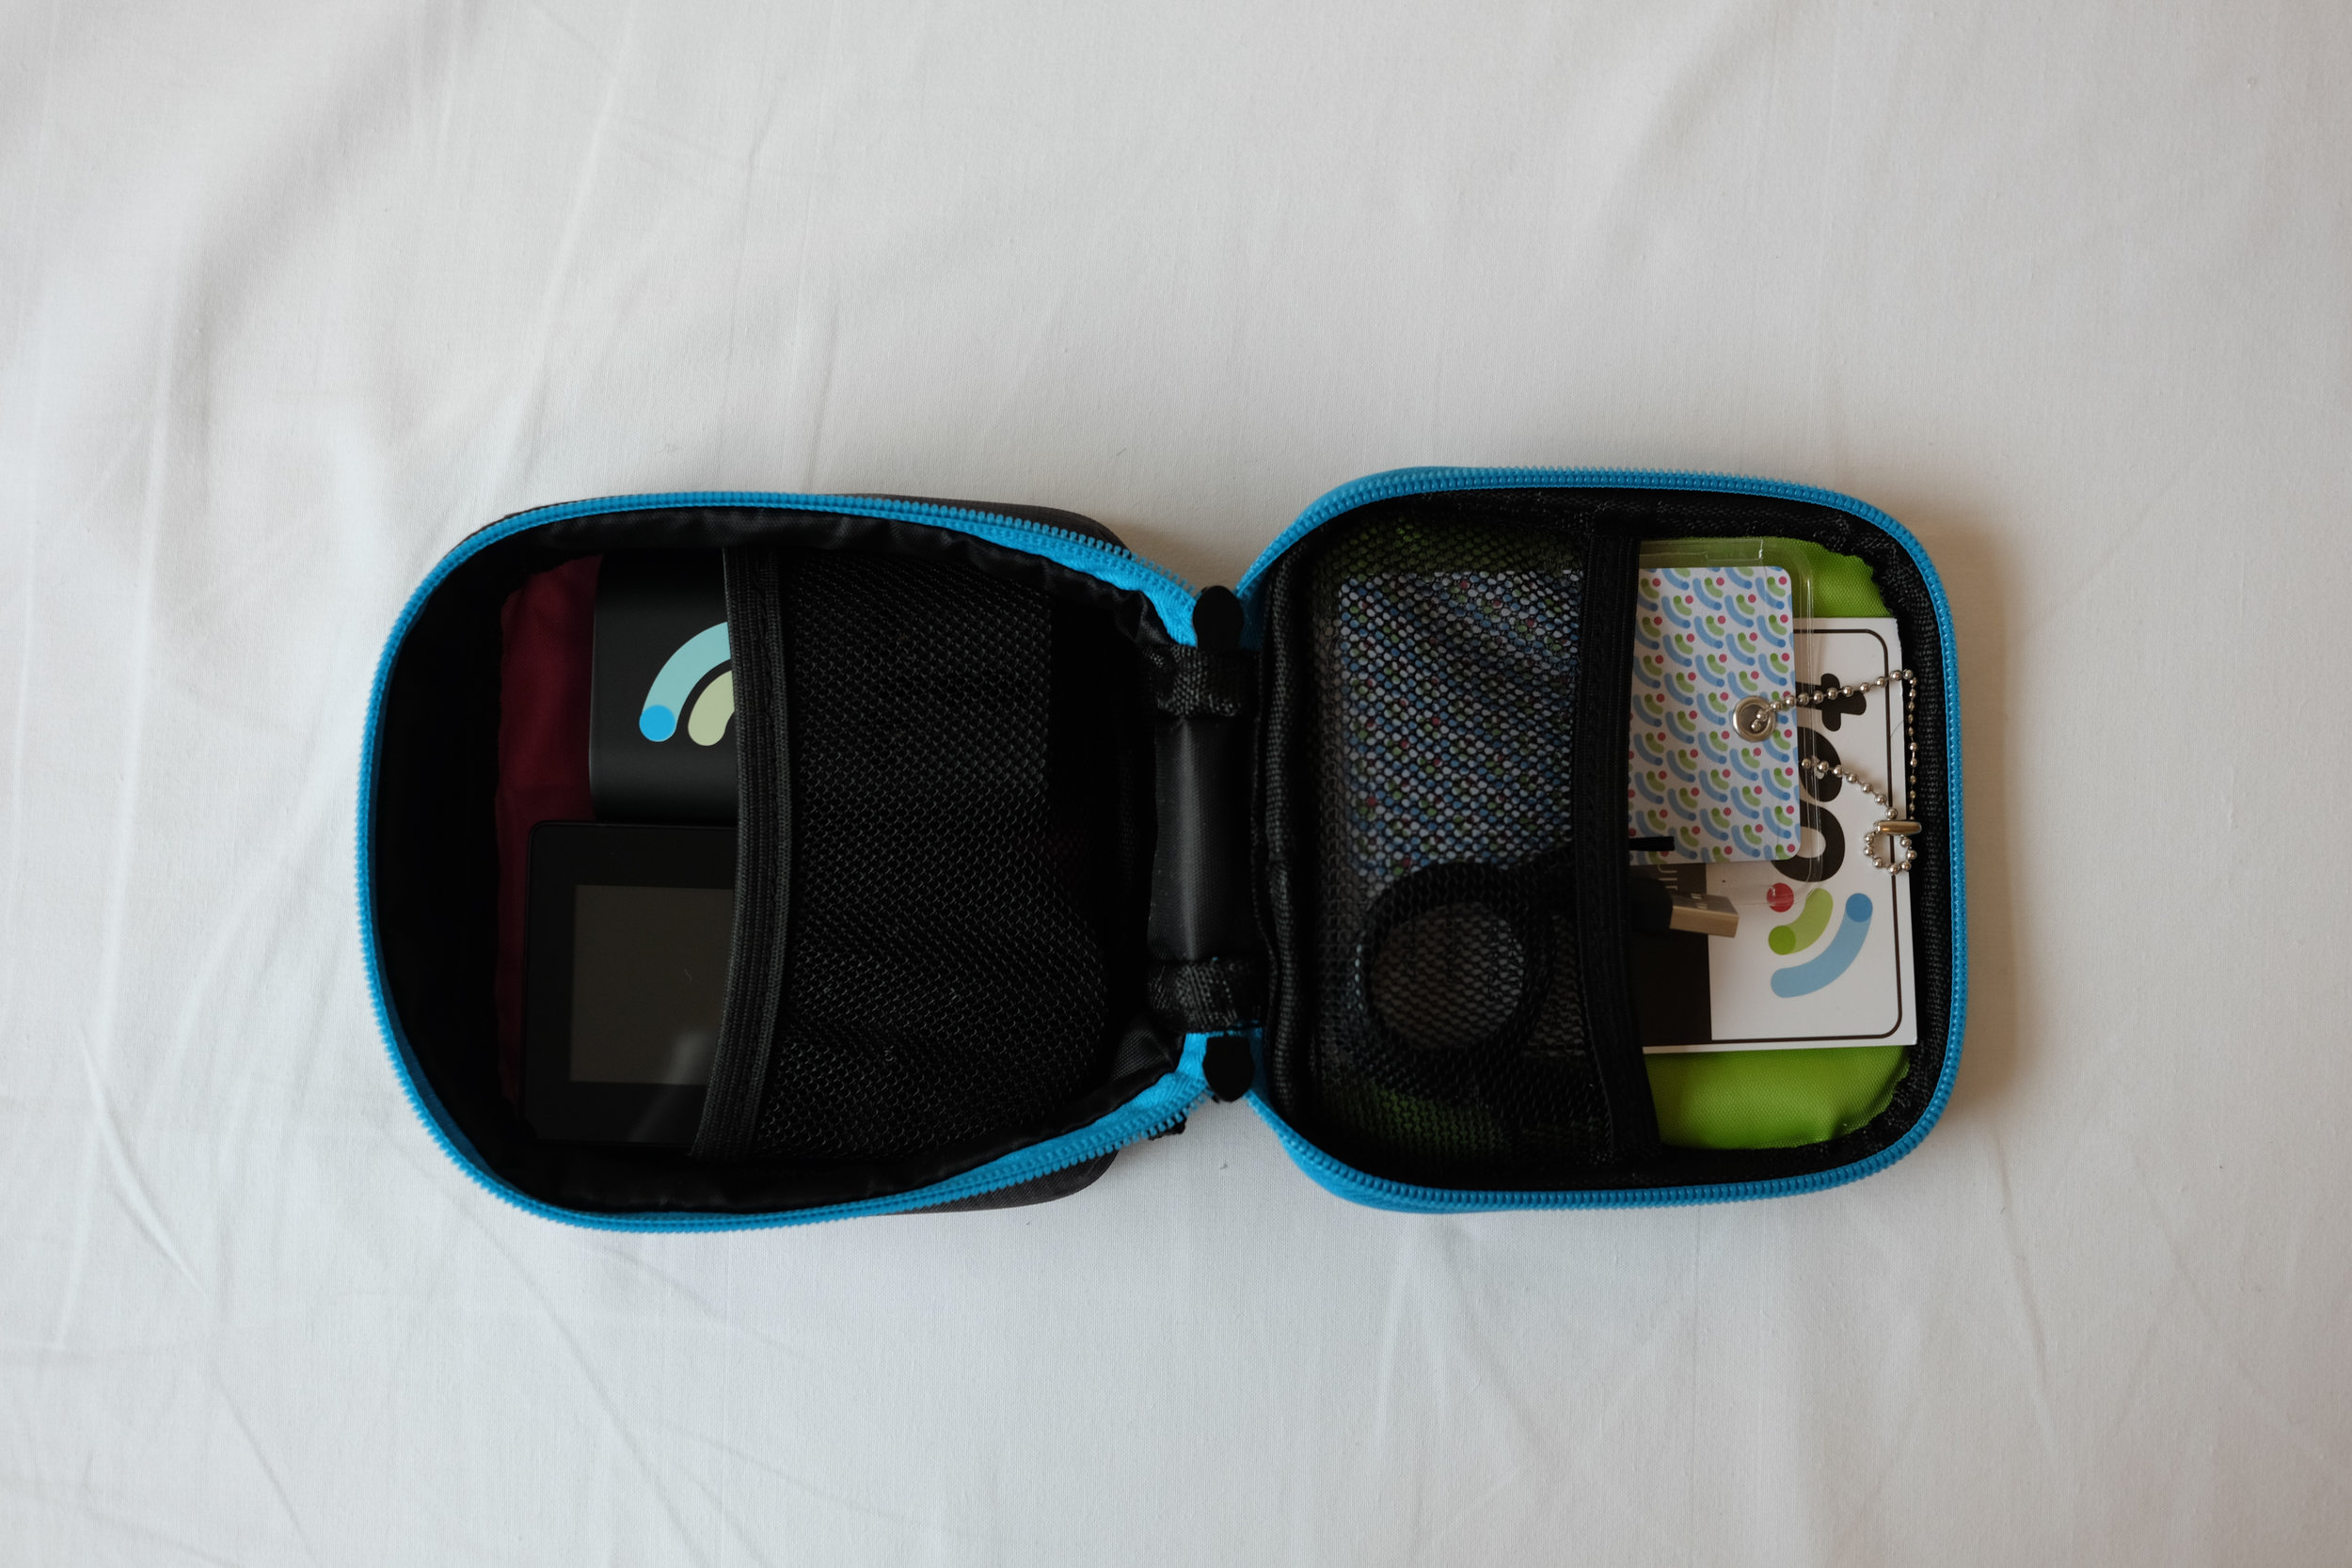 What it looks like when neatly packed inside the pouch bag